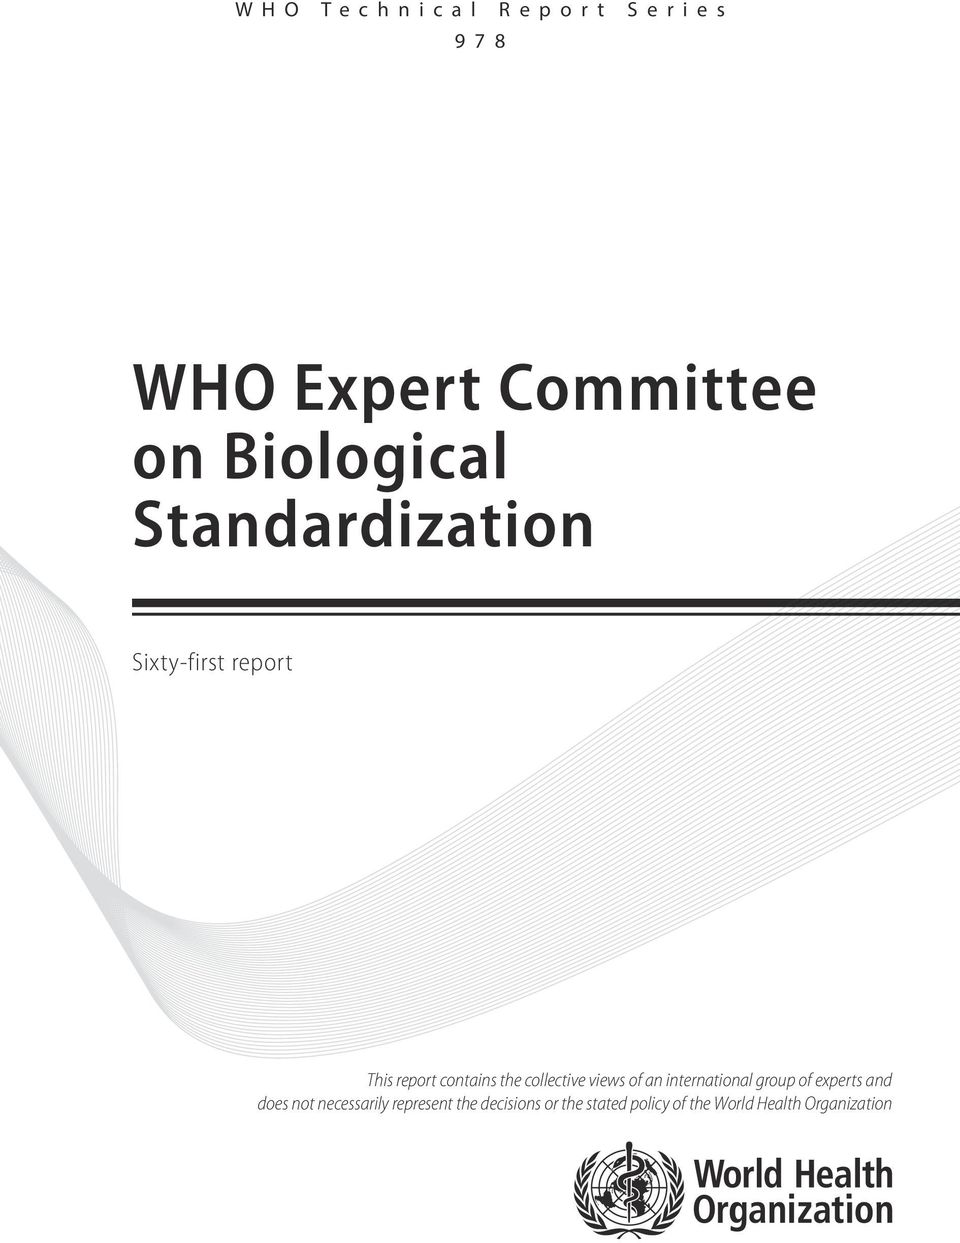 collective views of an international group of experts and does not